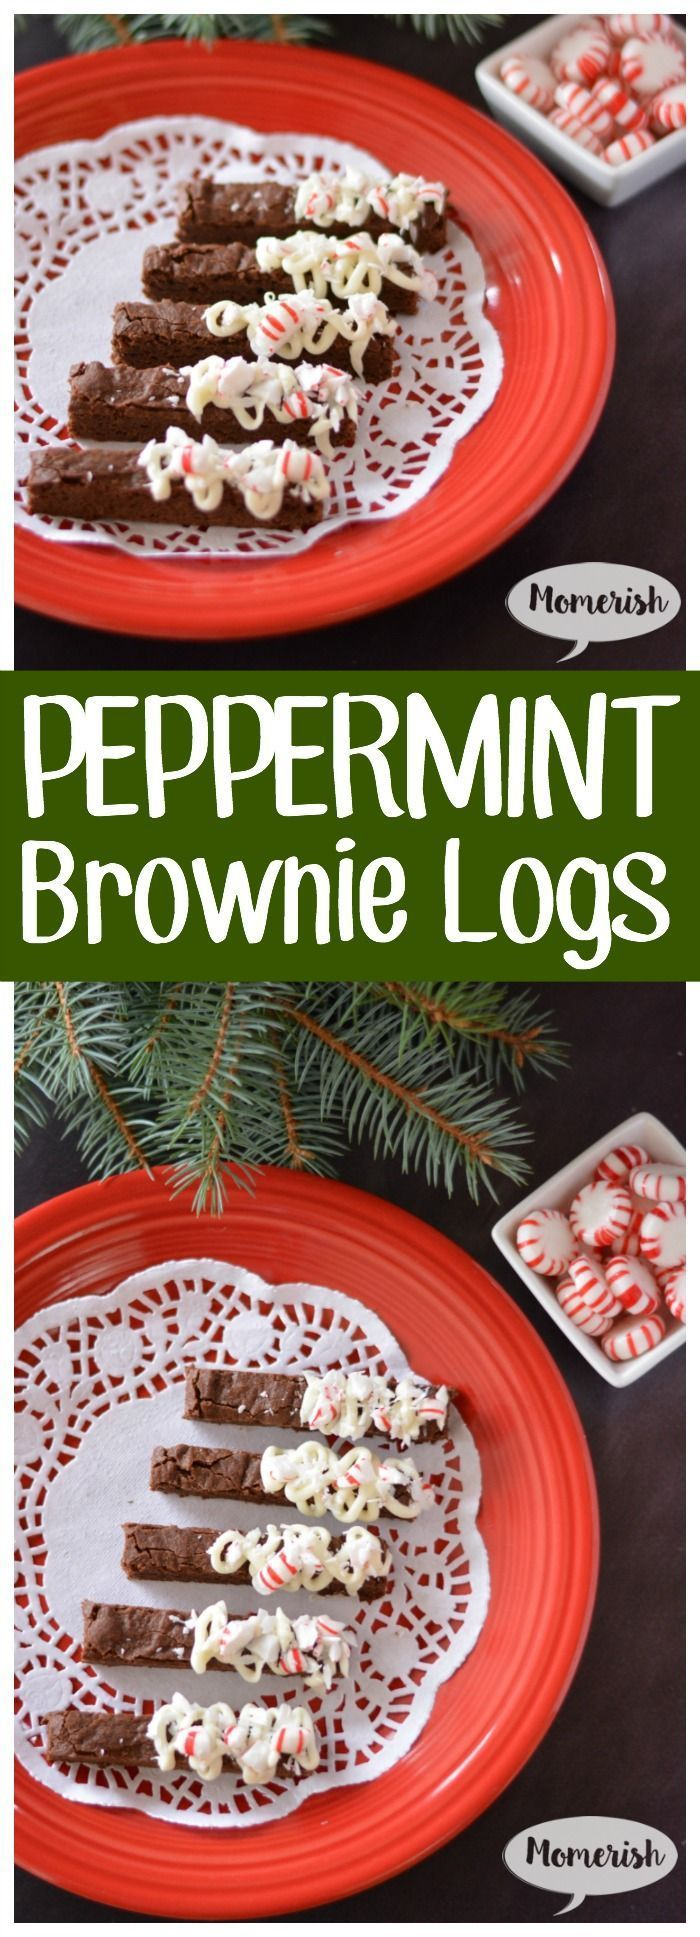 Peppermint Brownie Logs - A cute and easy dessert recipe perfect for a Christmas party or gifts for family and friends.